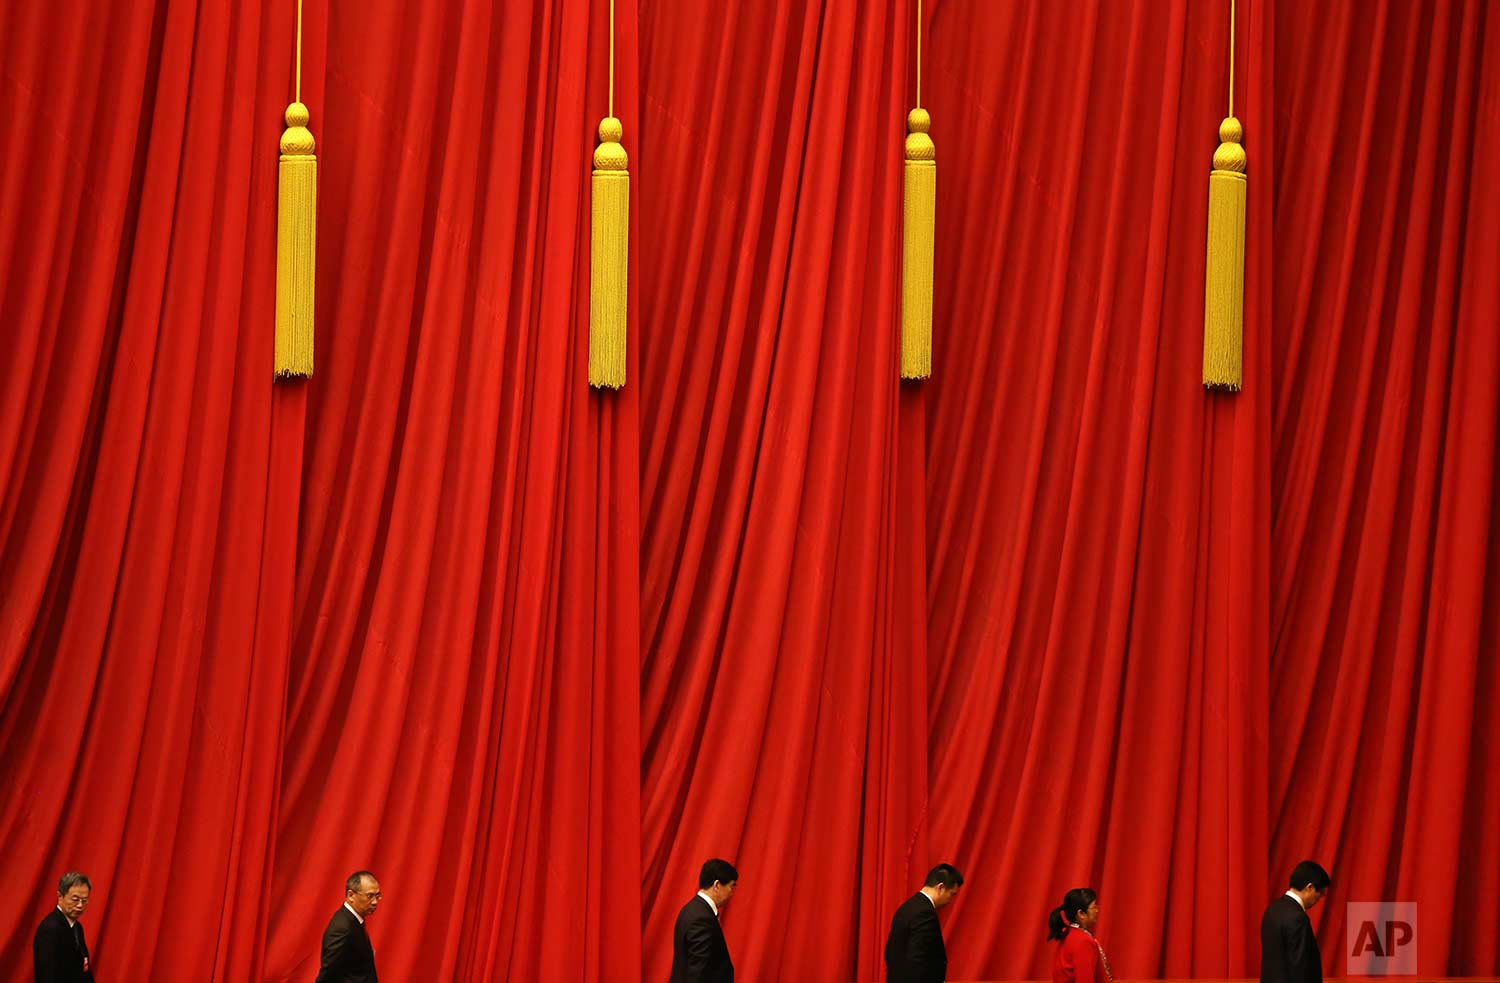 In this Thursday, March 15, 2018 photo, delegates walk past red curtains as they leave after attending the closing session of the Chinese People's Political Consultative Conference (CPPCC) at the Great Hall of the People in Beijing. (AP Photo/Aijaz Rahi)